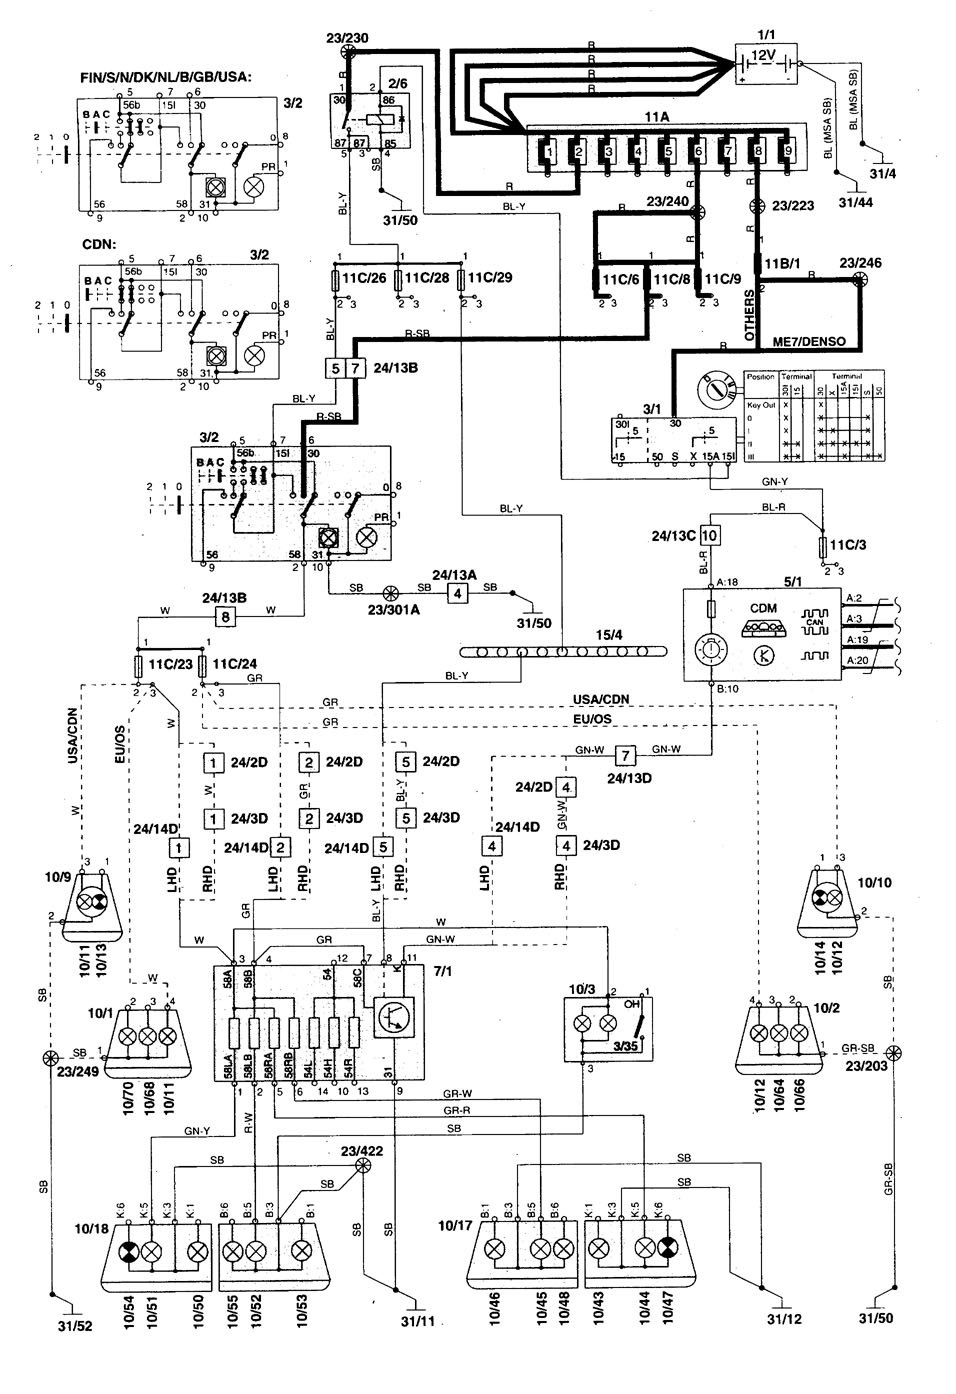 2000 volvo s70 fuse box diagram